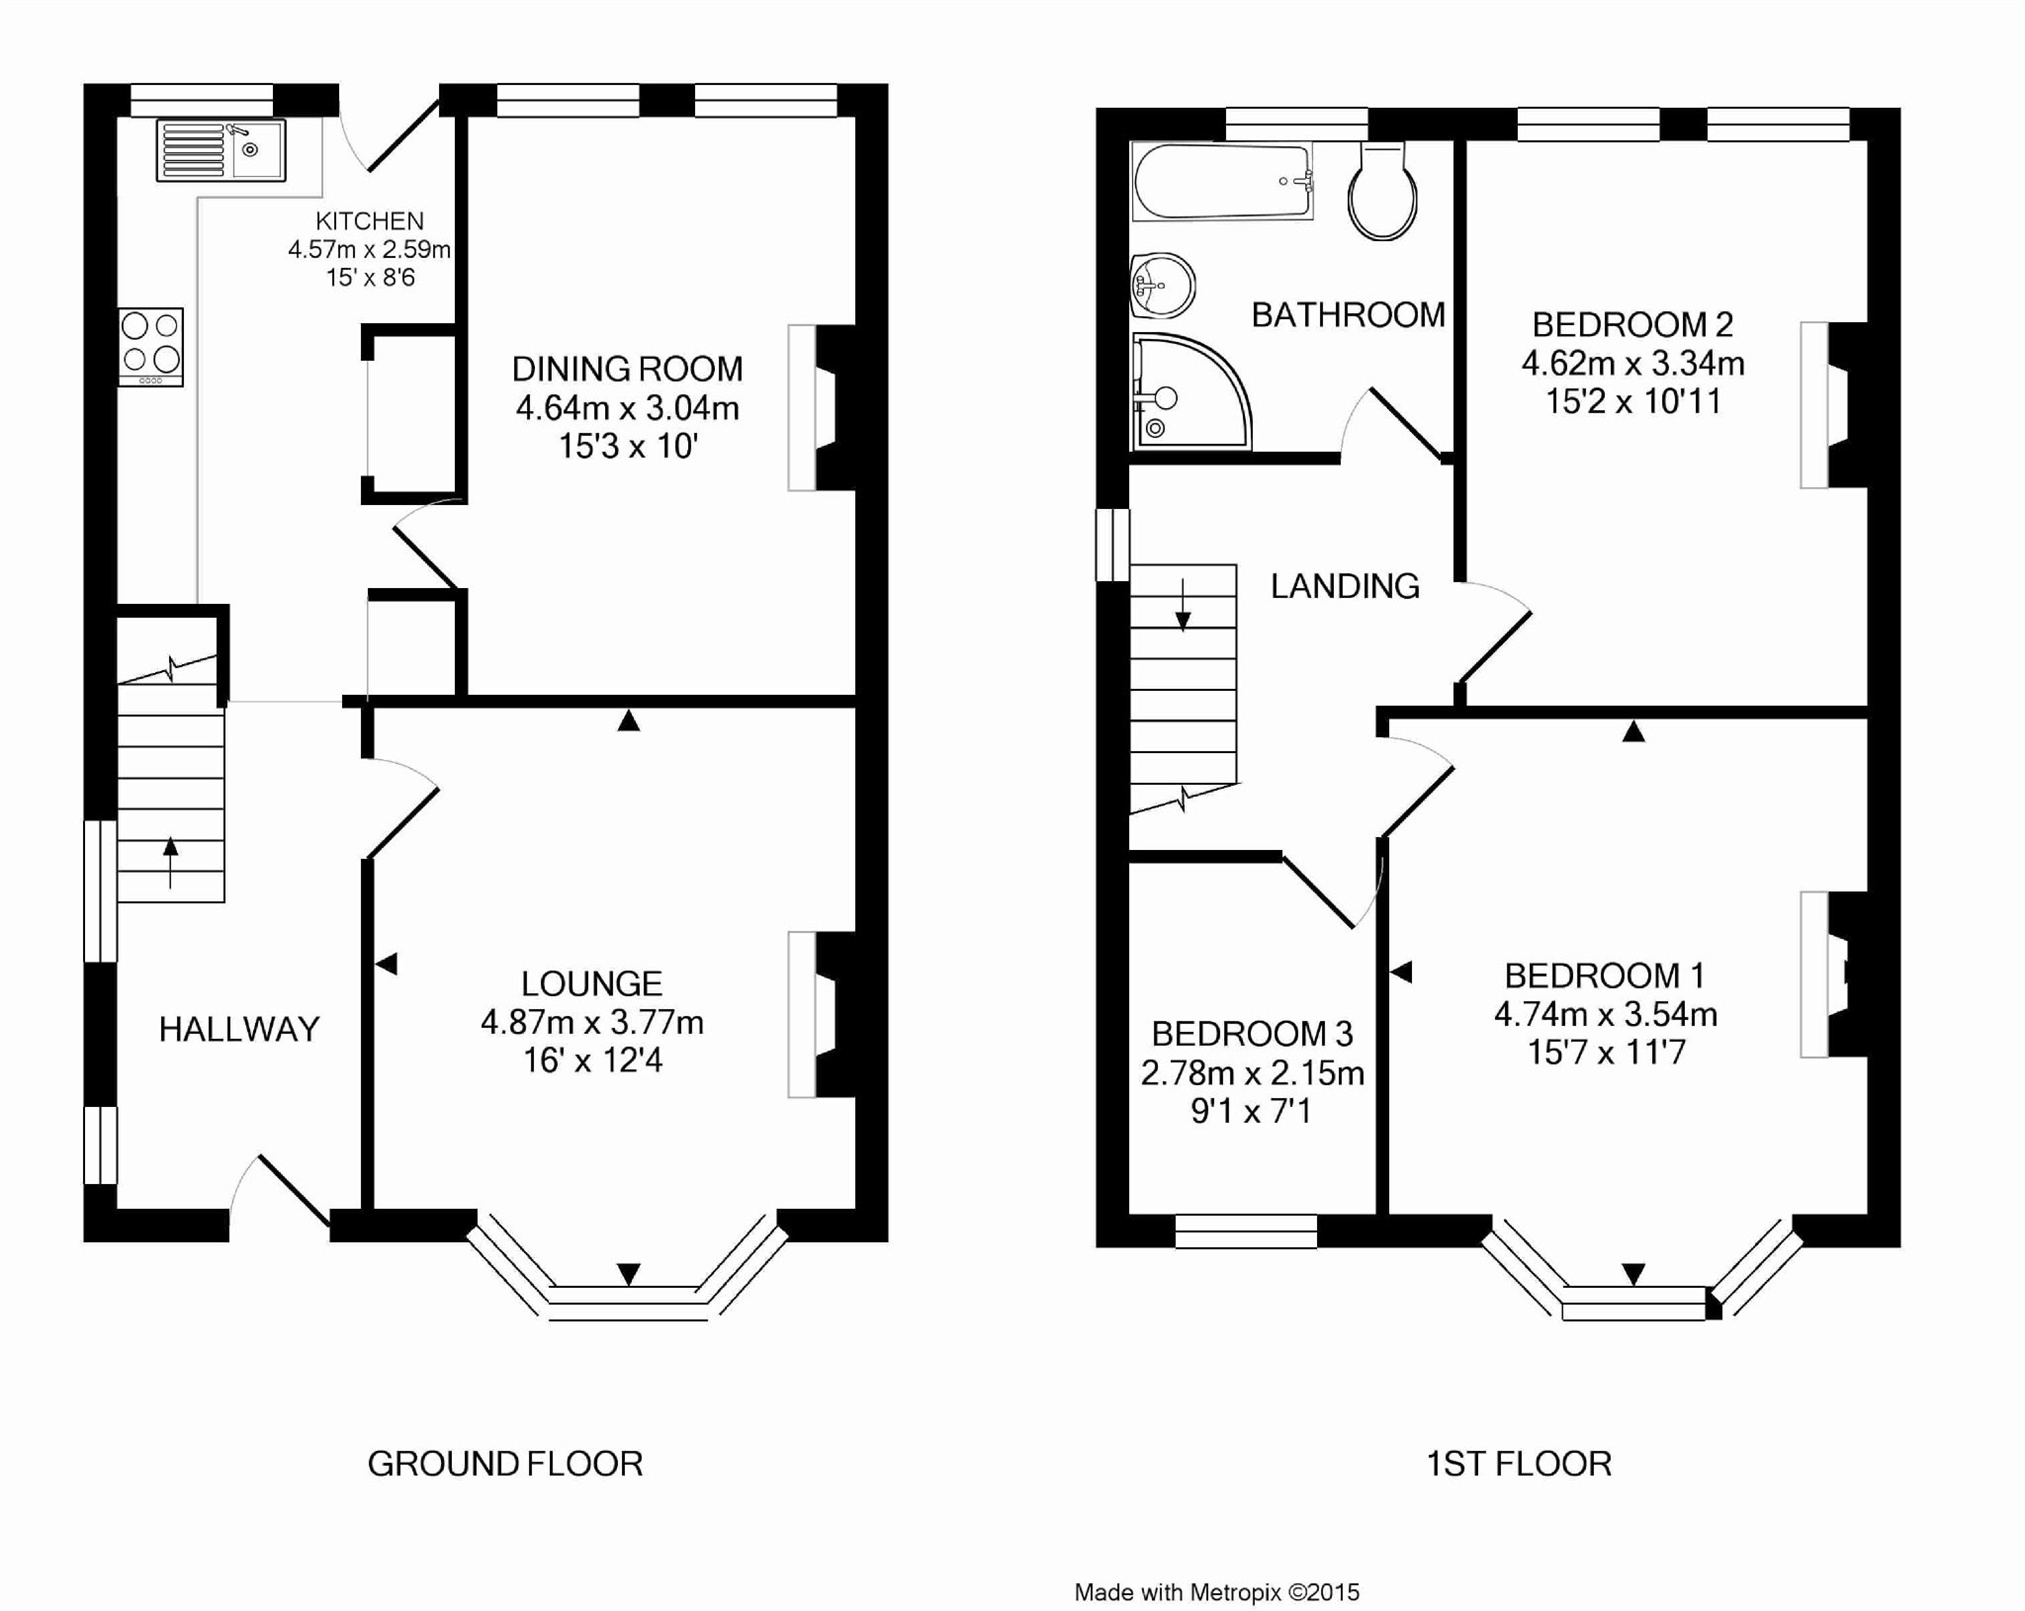 Cj hole brislington 3 bedroom semi detached house for sale for Floor plans for a semi detached house extension